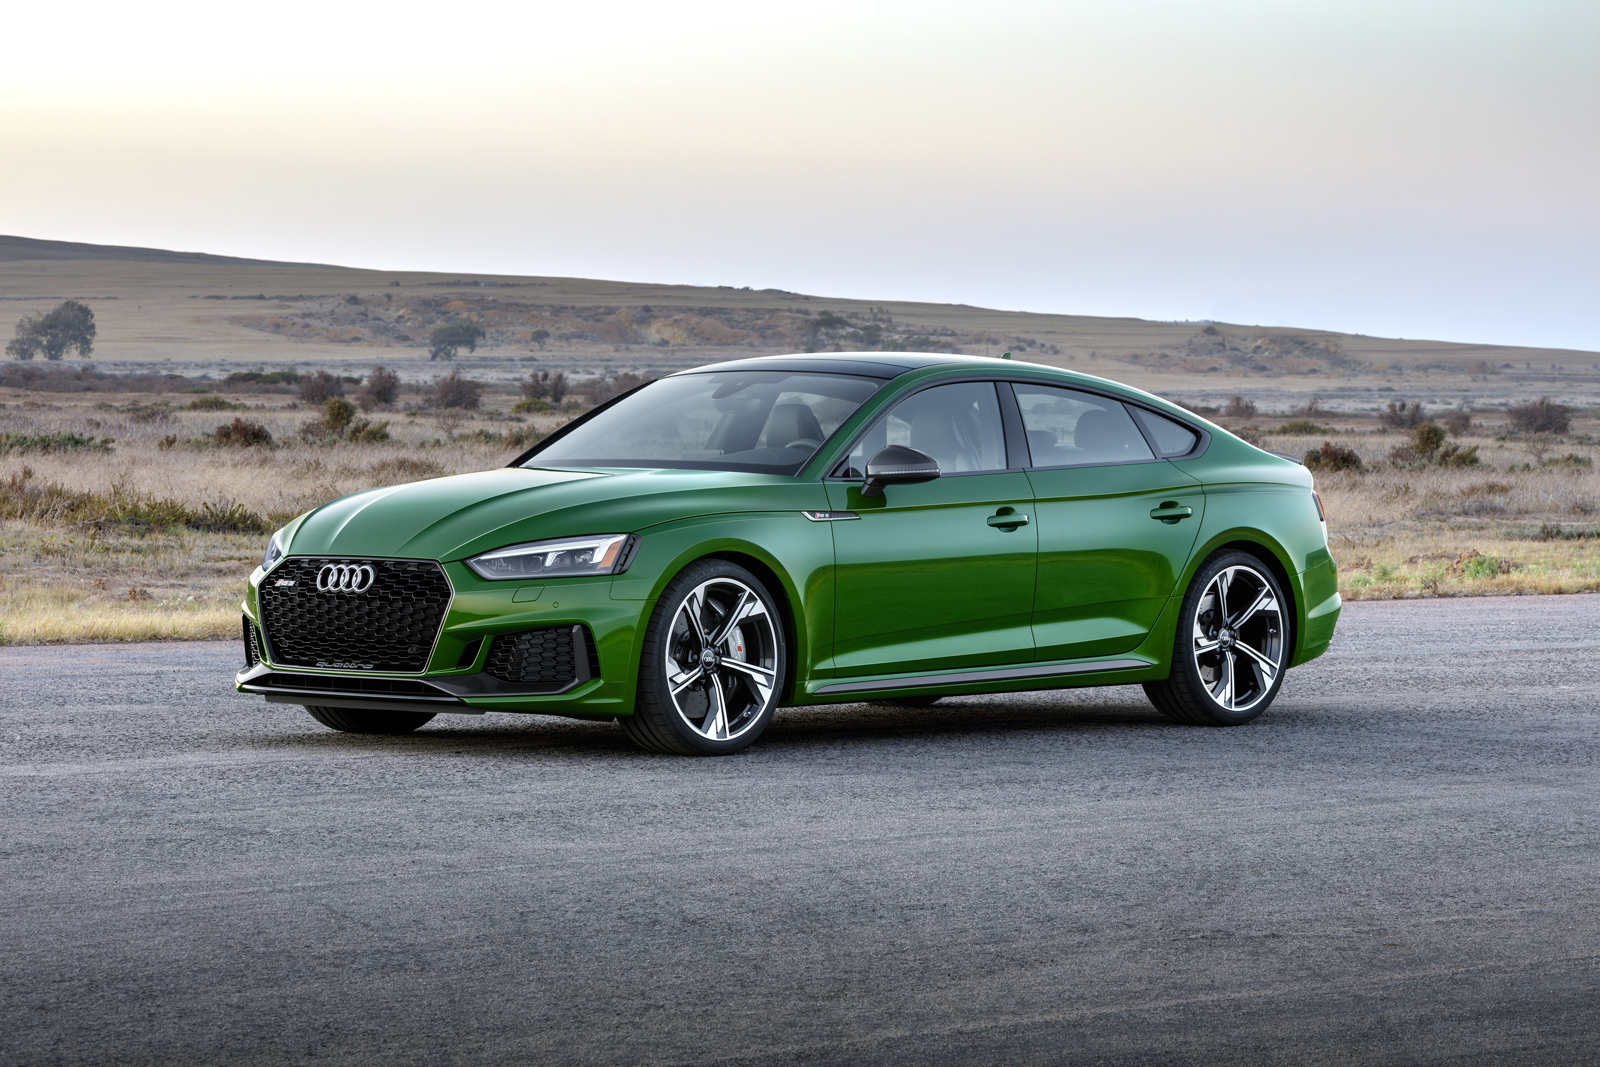 2019 audi rs 5 sportback two more doors same sleek shape news. Black Bedroom Furniture Sets. Home Design Ideas